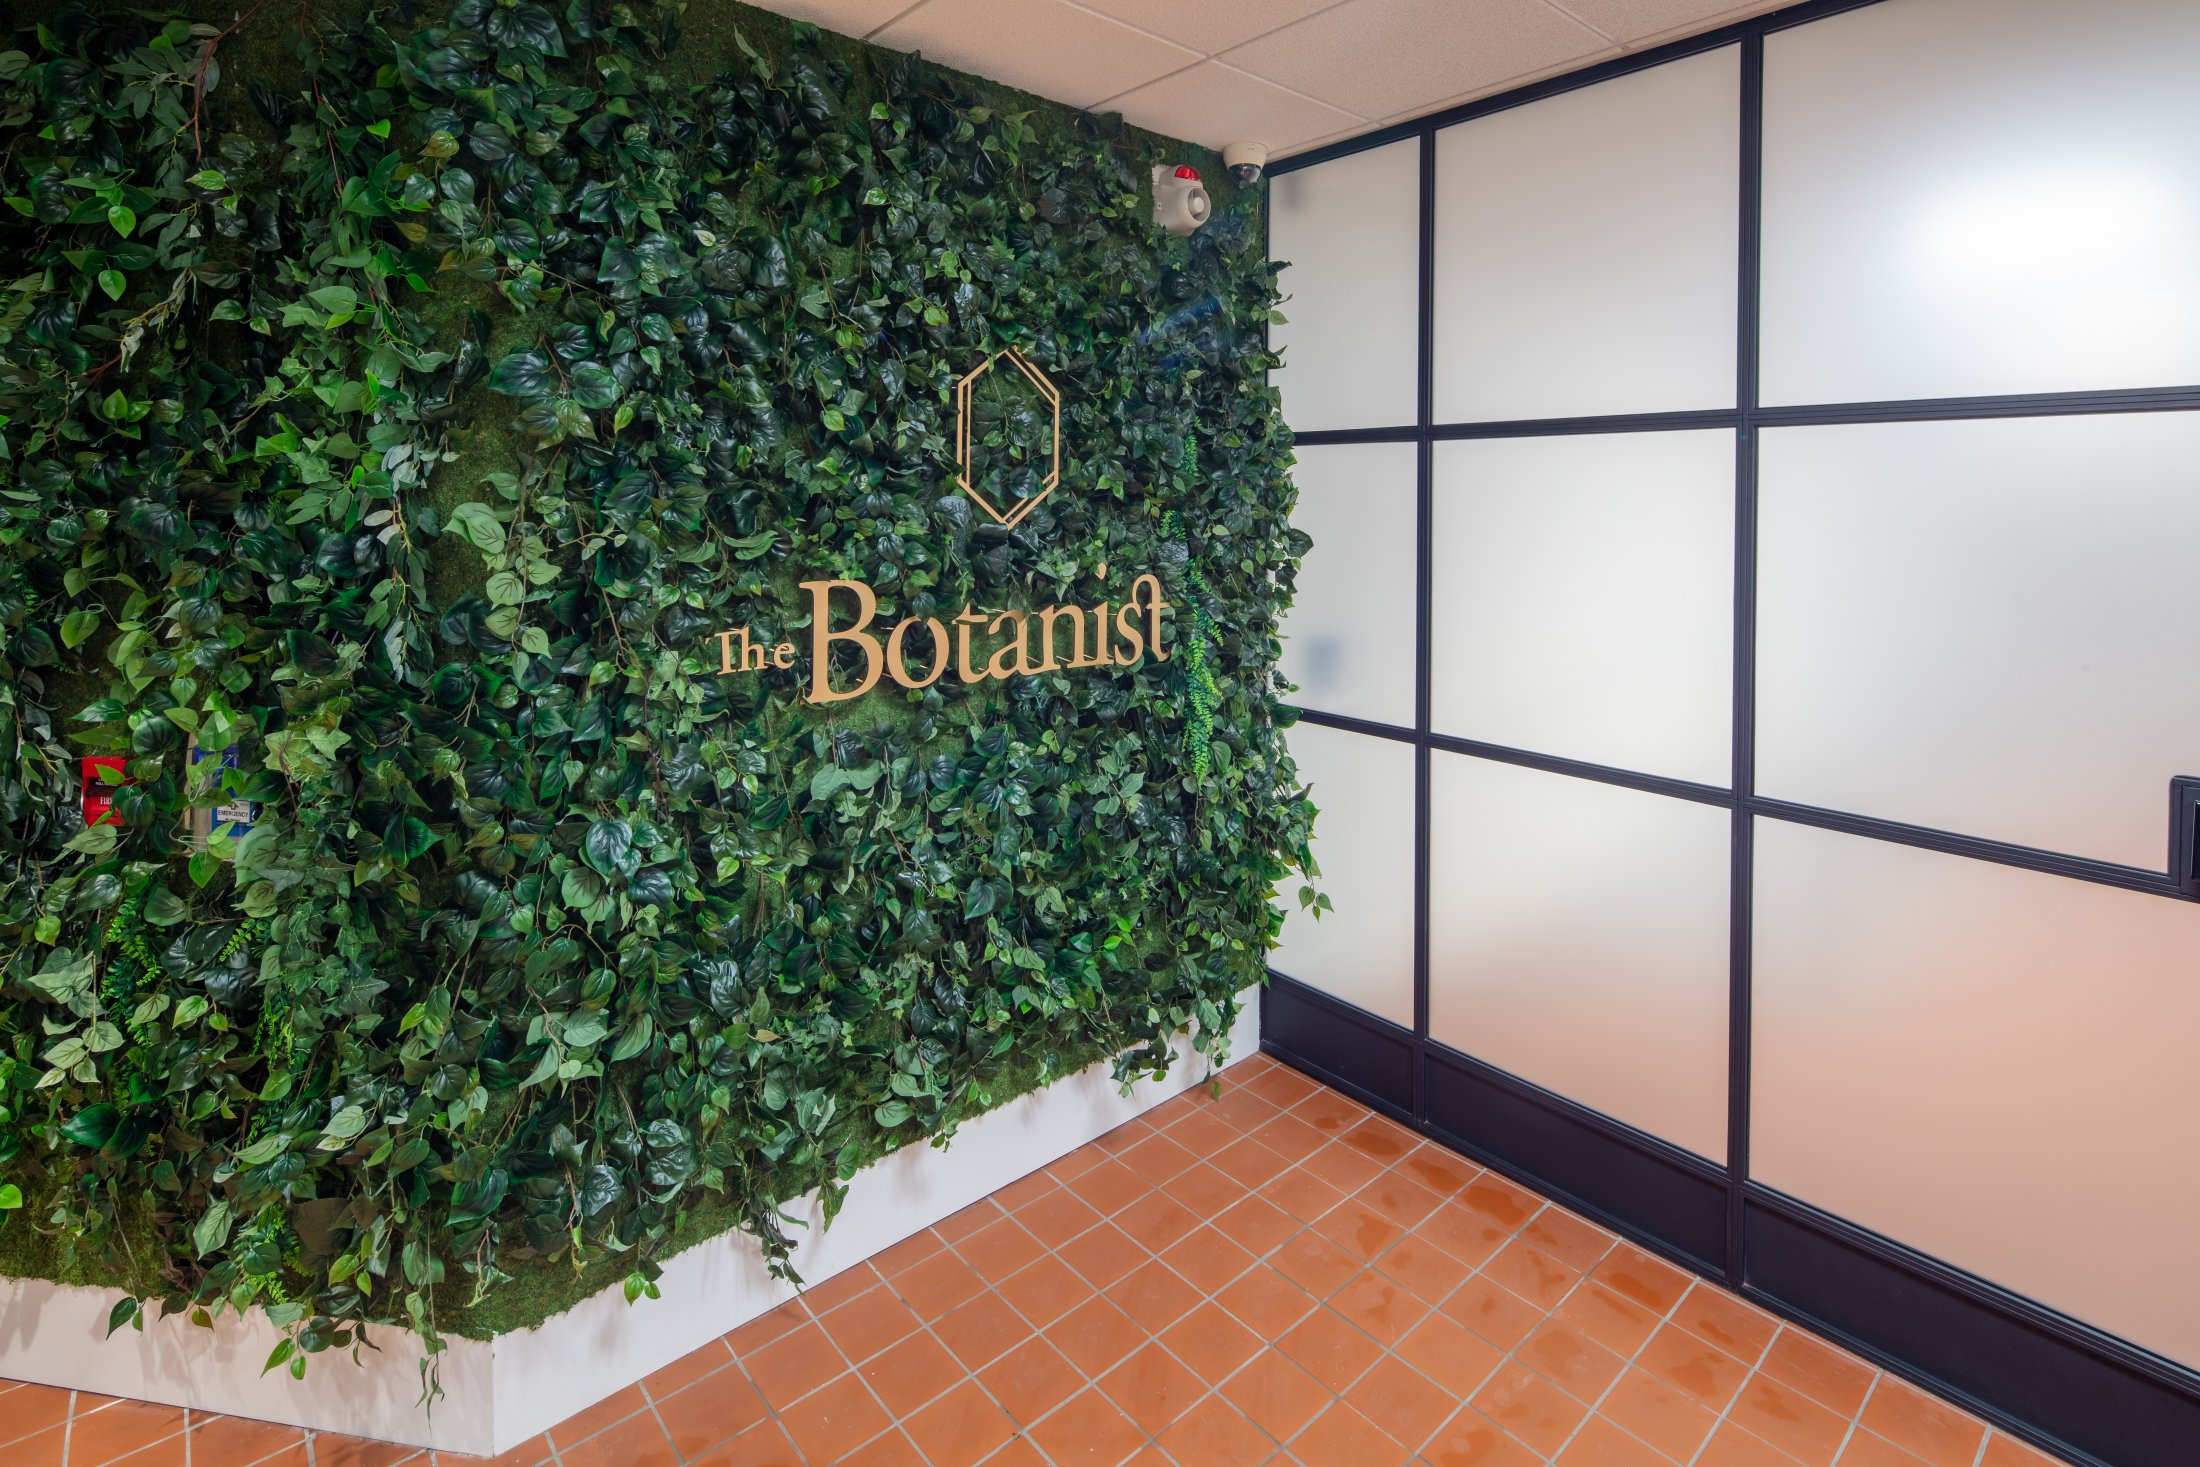 The Botanist: Welcome To the Intersection of Science and Nature